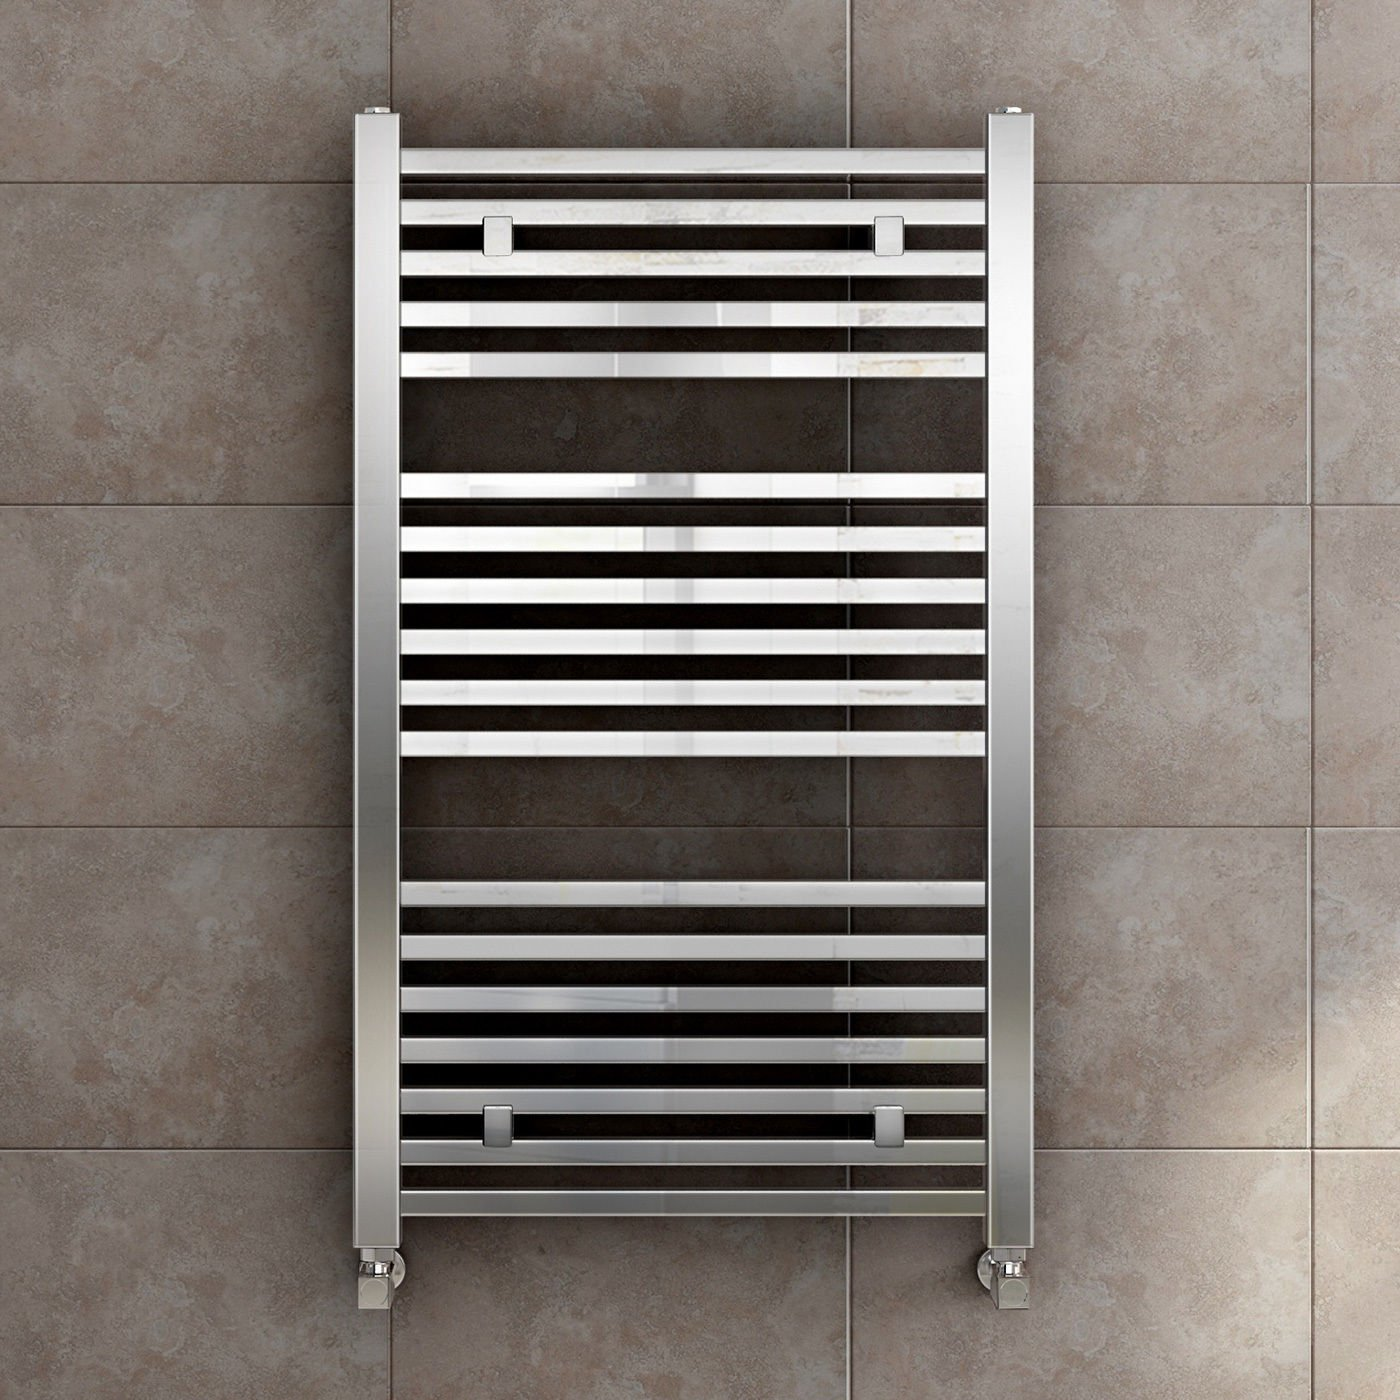 650 x 400 Premium Square Bar Heated Towel Rail Chrome Bathroom Radiator - All Sizes iBathUK